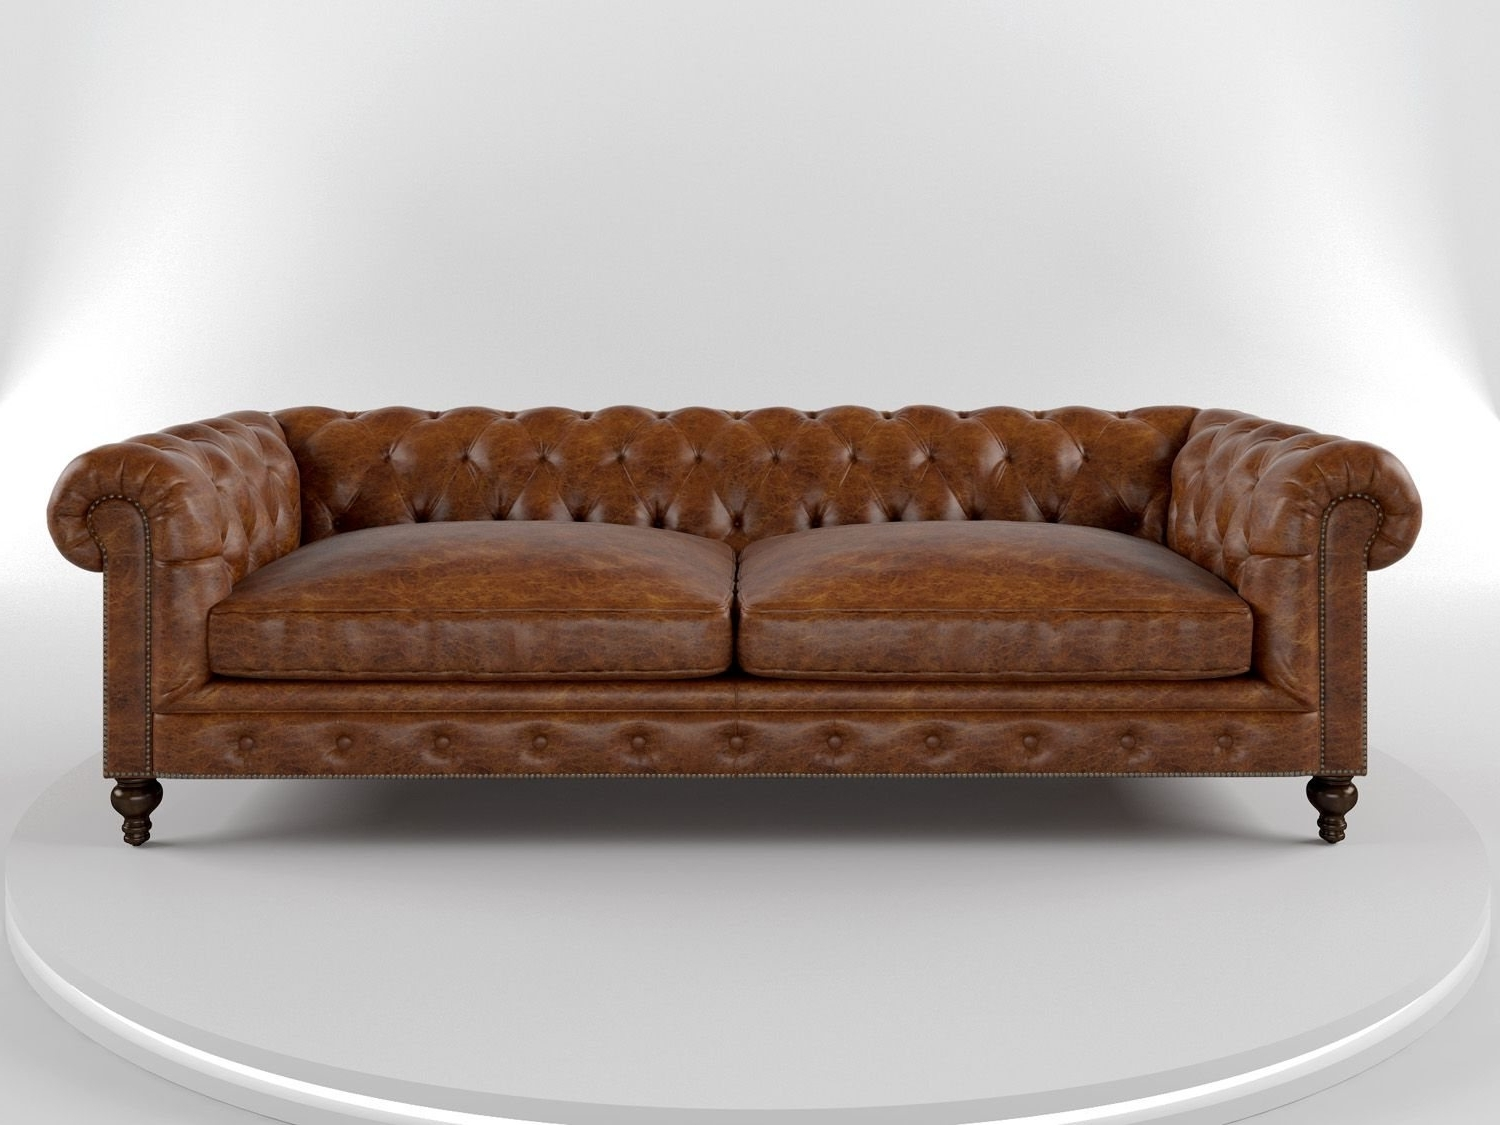 Popular Cococo Custom Chesterfield Leather Tufted Sofas – Made In Usa In Leather Chesterfield Sofas (View 14 of 15)